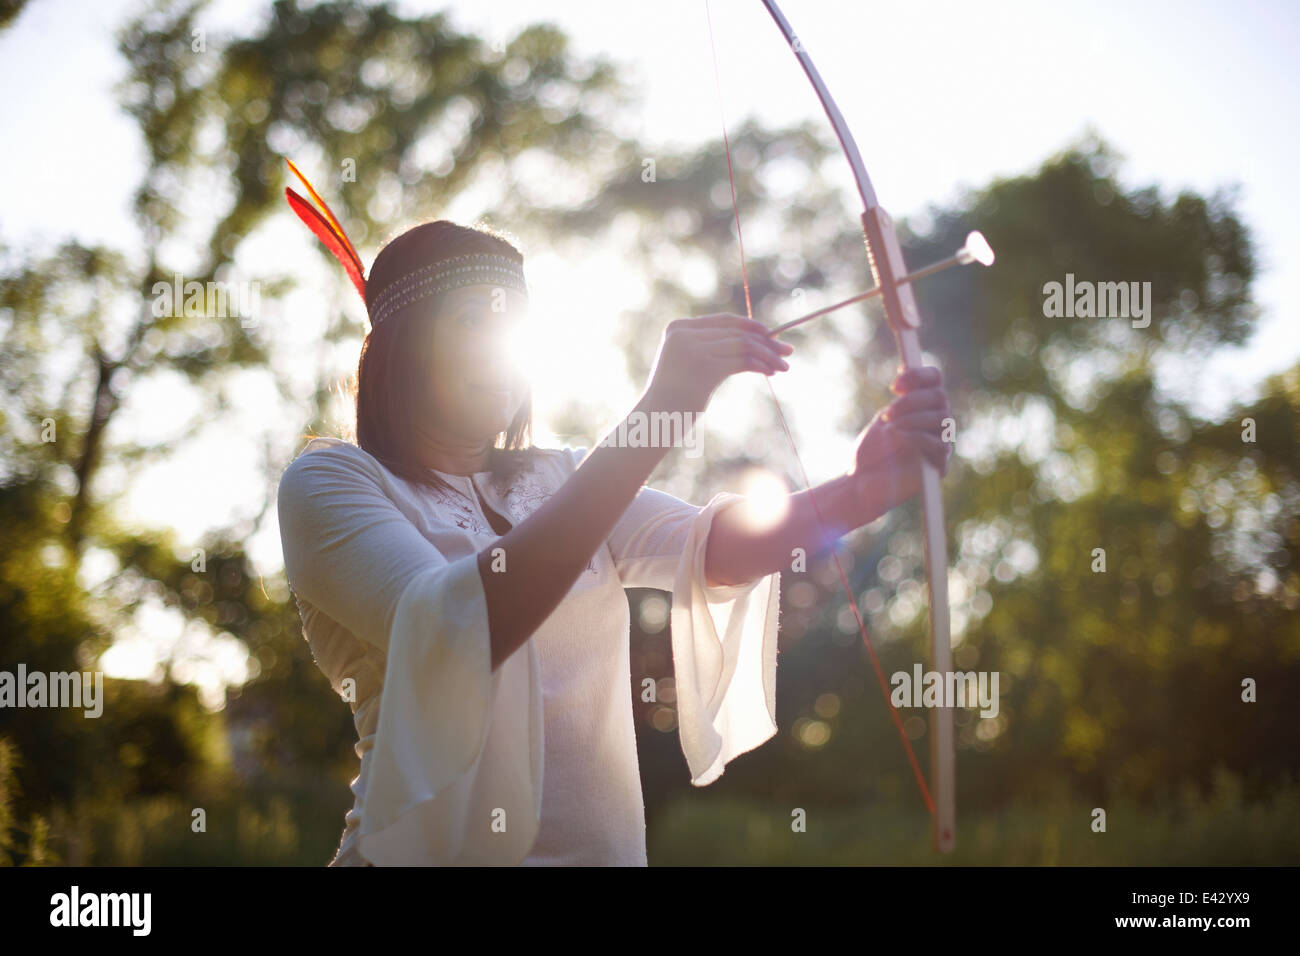 Mature woman in woodlands aiming bow and arrow - Stock Image